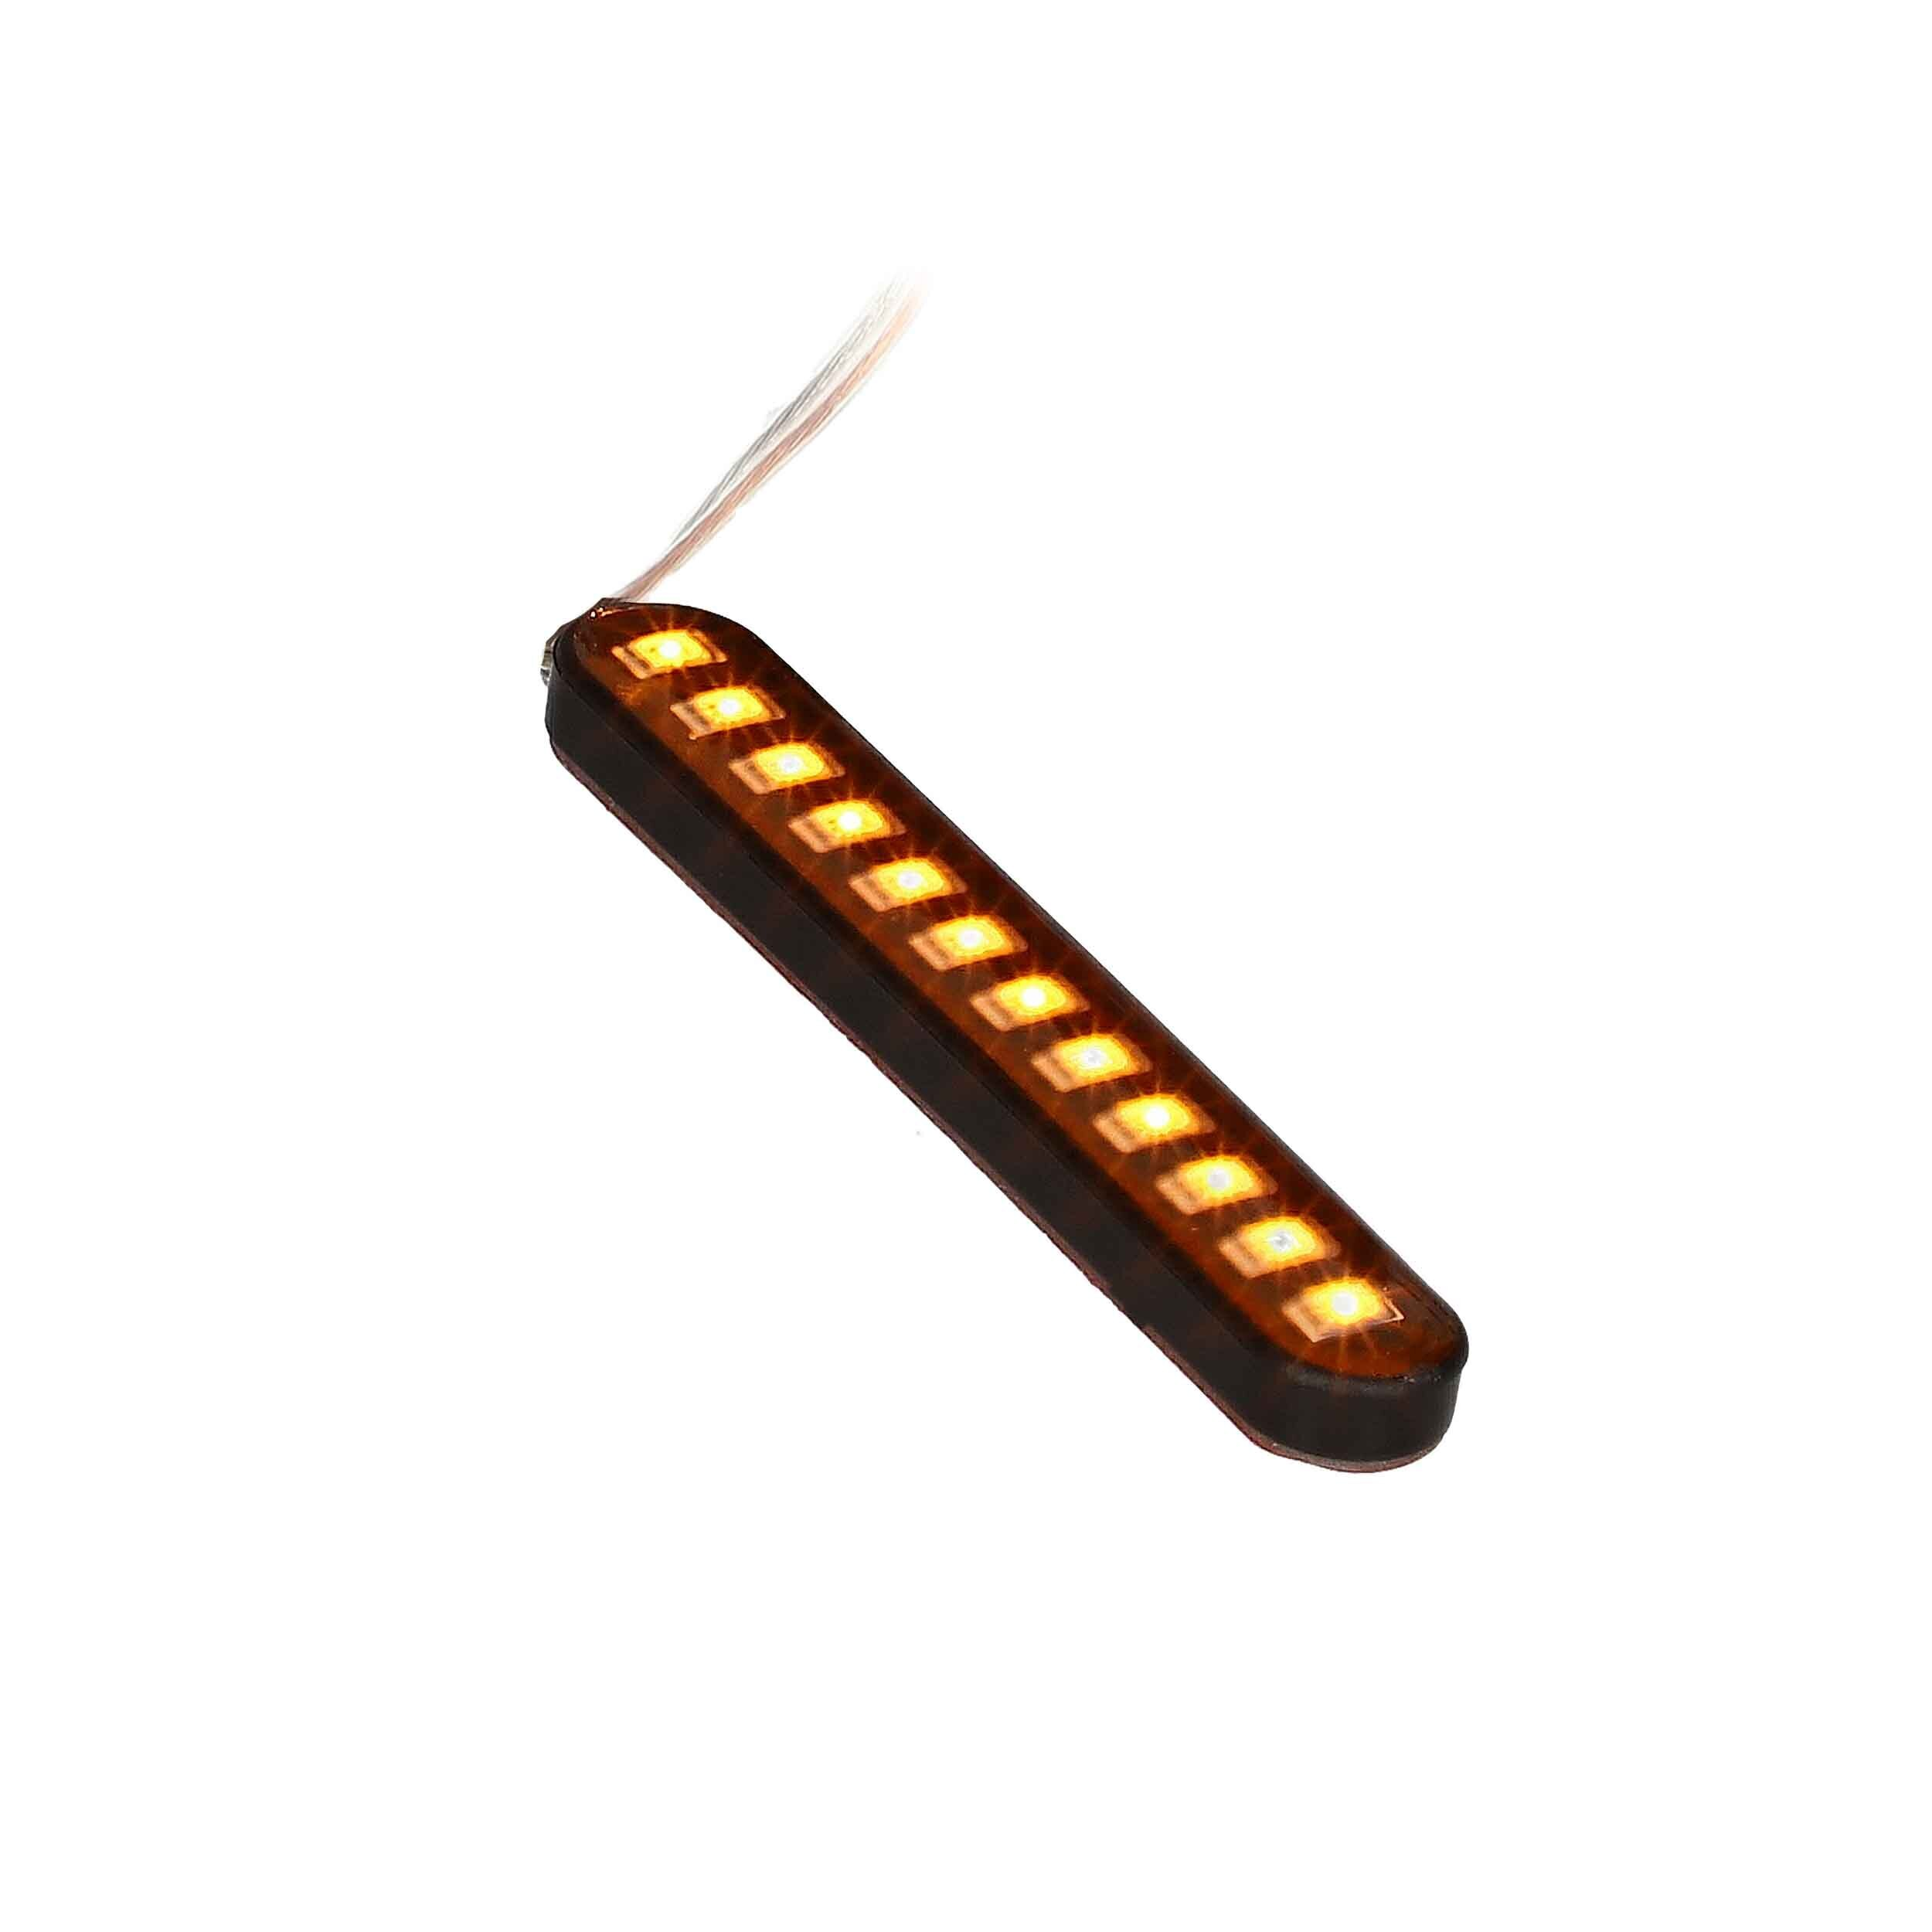 Amber Sequential Turn Signal - 3 Inch, 12 LED, Set of 2